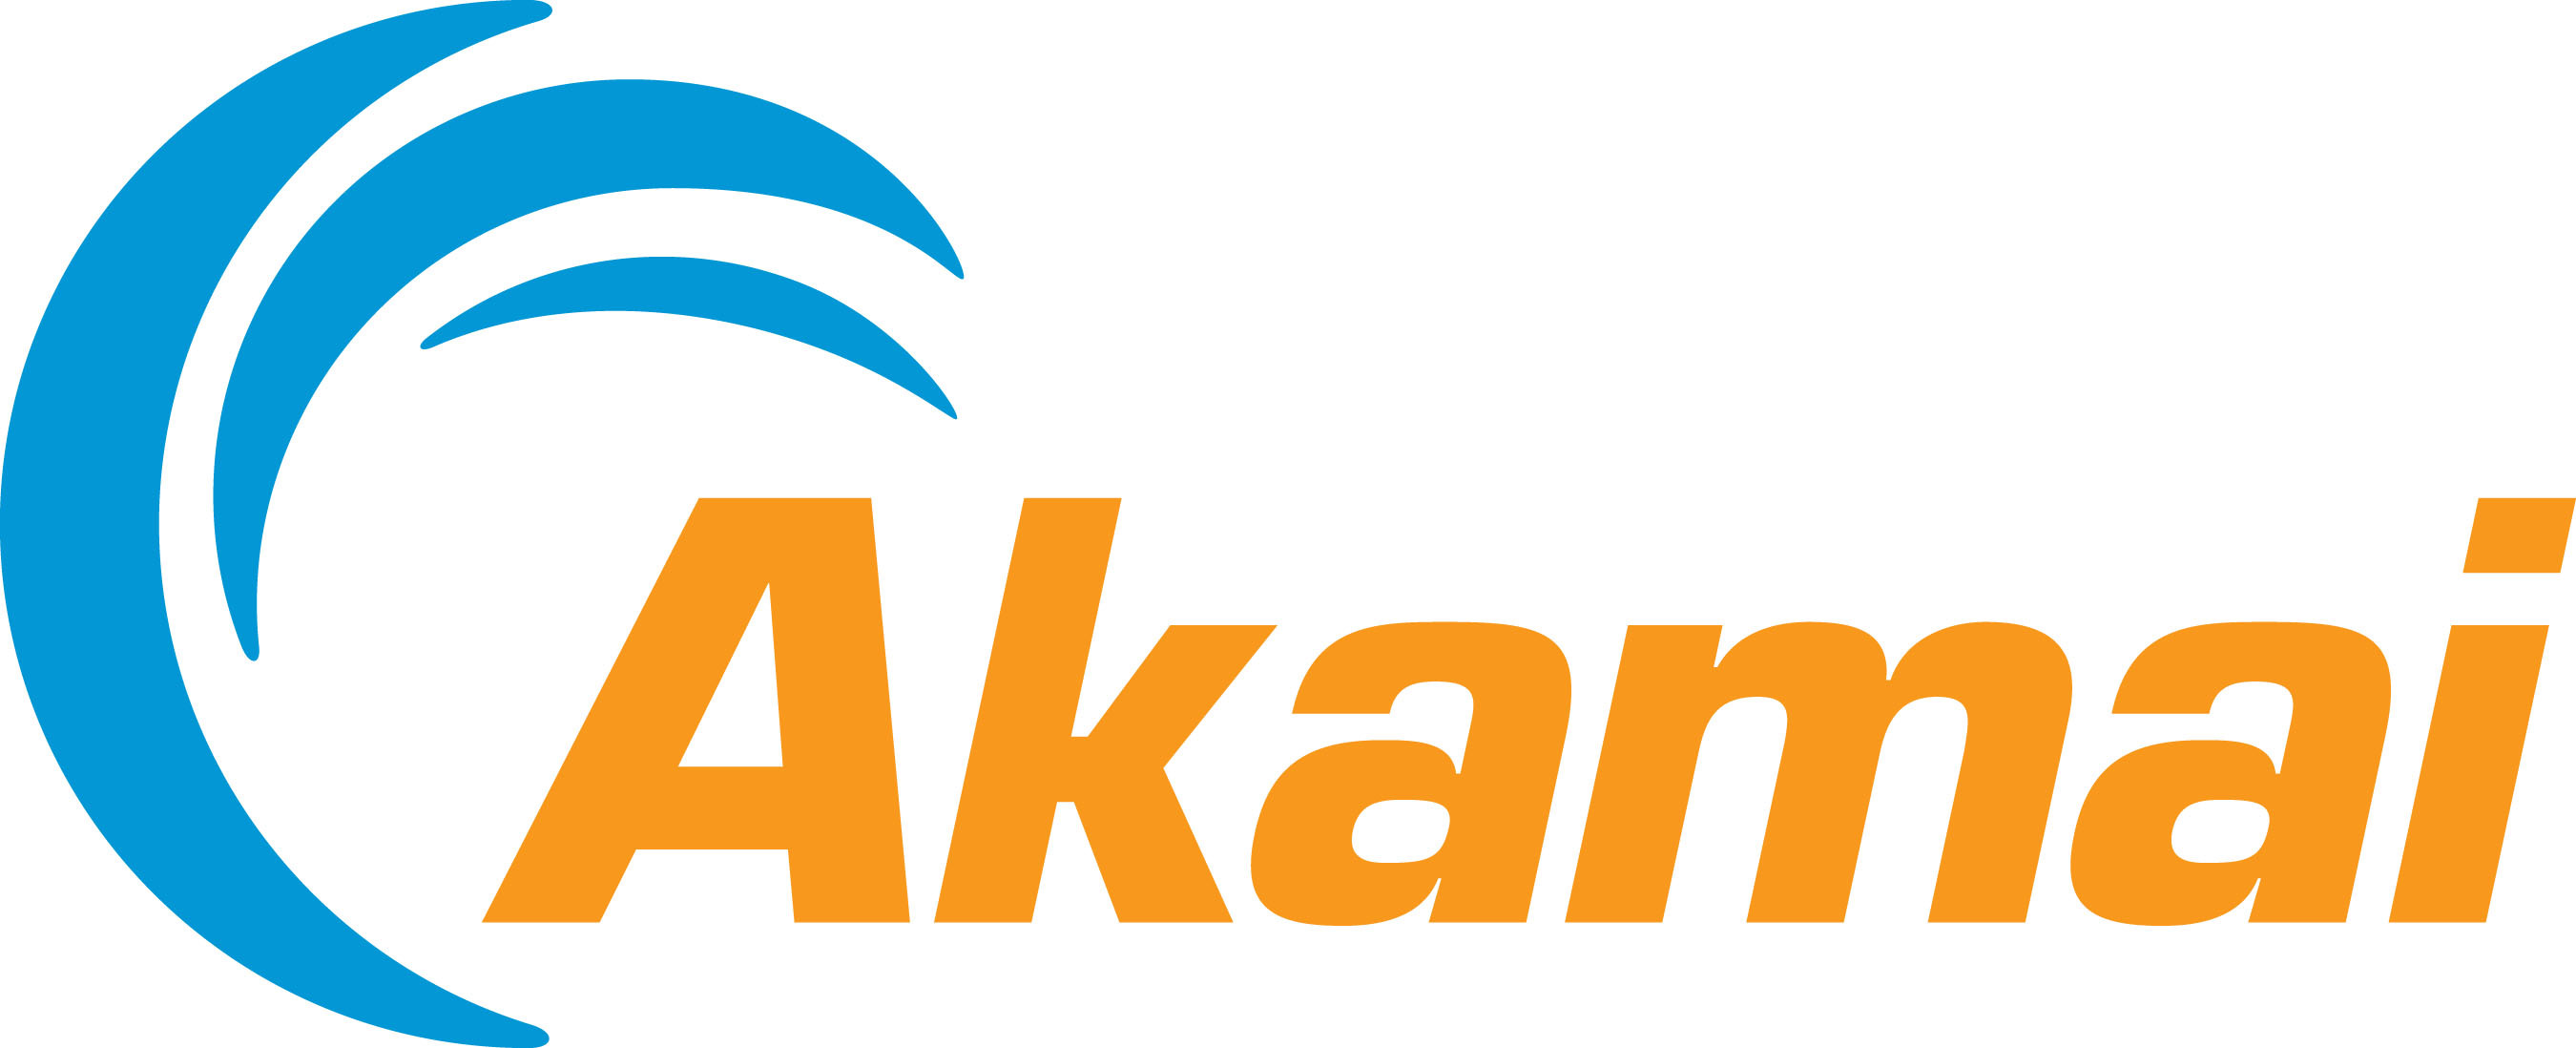 Global Average Connection Speed Increases 14 Percent Year over Year, According to Akamai's 'Second Quarter, 2016 State of the Internet Report'